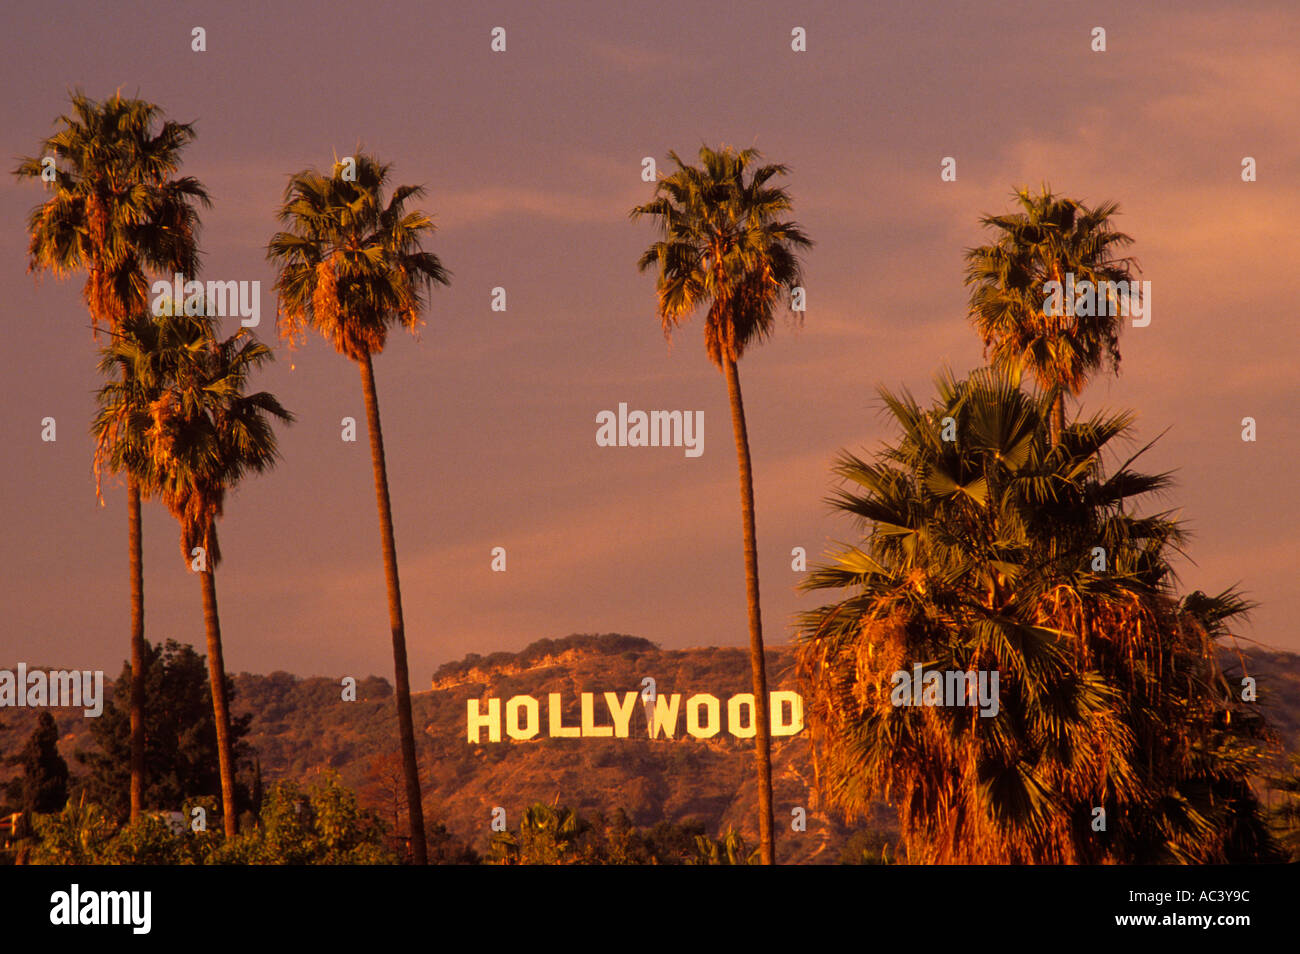 Hollywood Sign And Palm Trees Los Angeles California